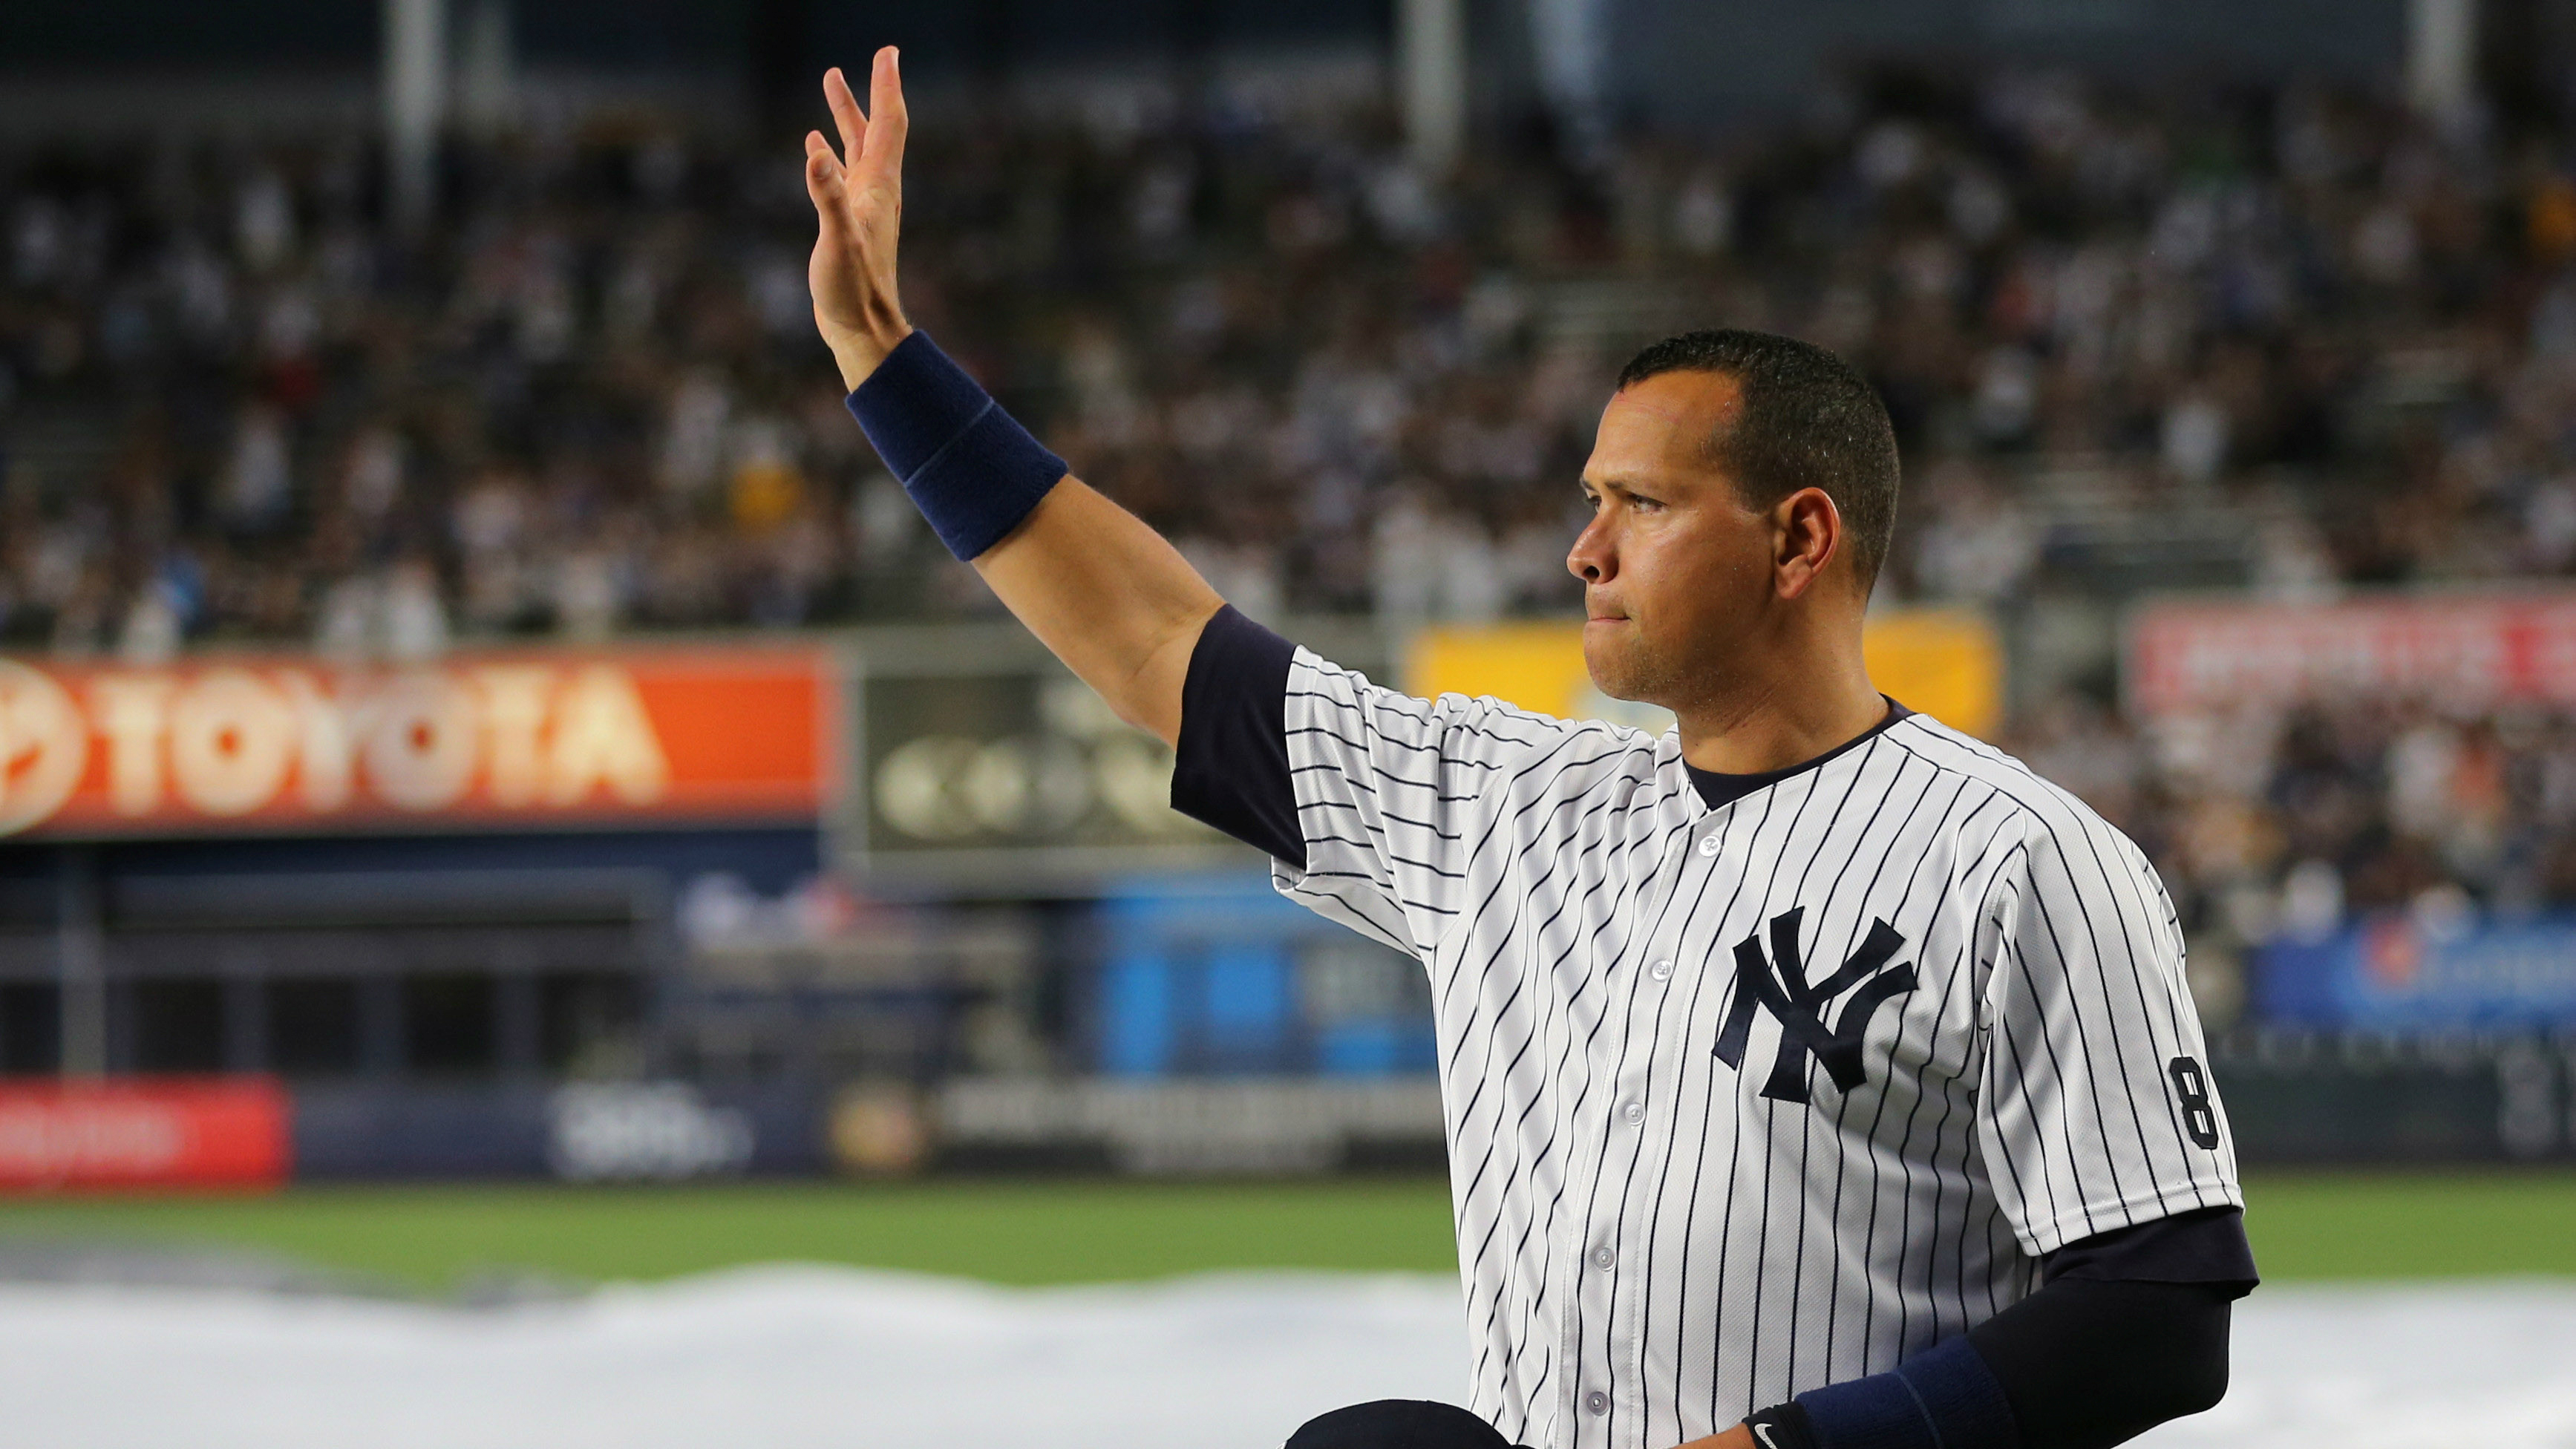 The baseball player Alex Rodriguez waving to fans on the day of his final game.